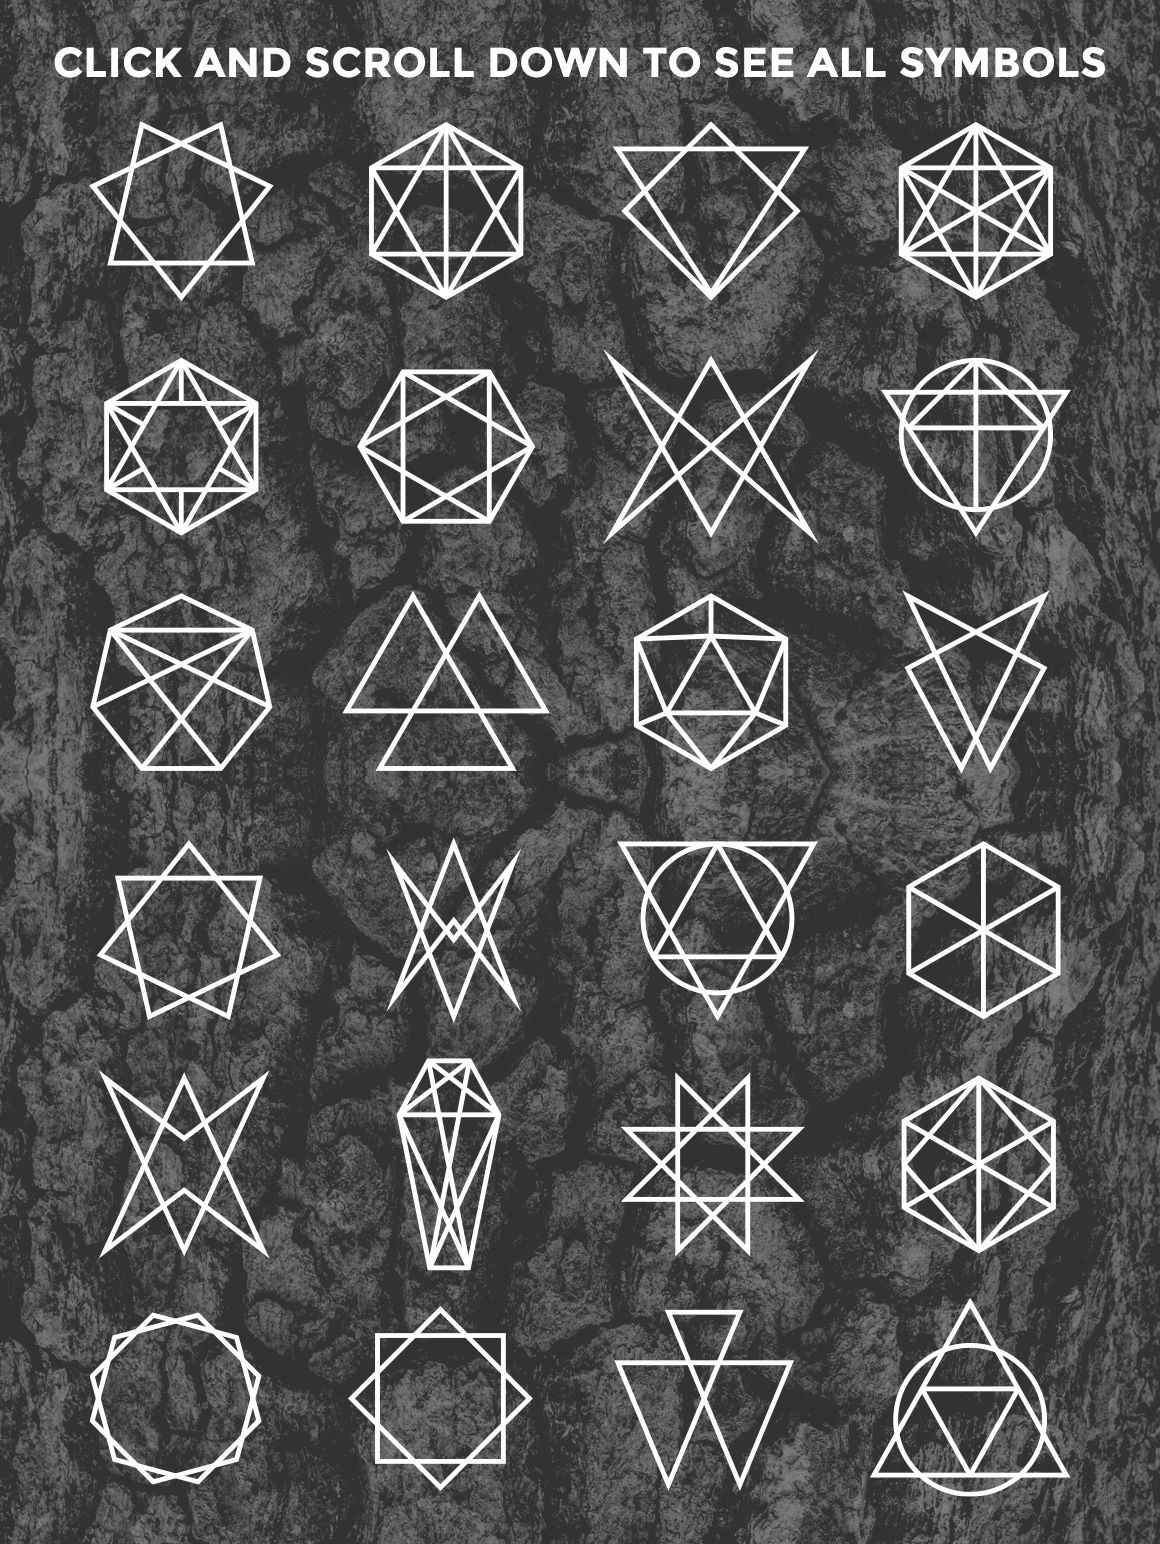 24 occult symbols plus 4 free photos by blacklabel on 24 occult symbols plus 4 free photos by blacklabel on creativemarket more buycottarizona